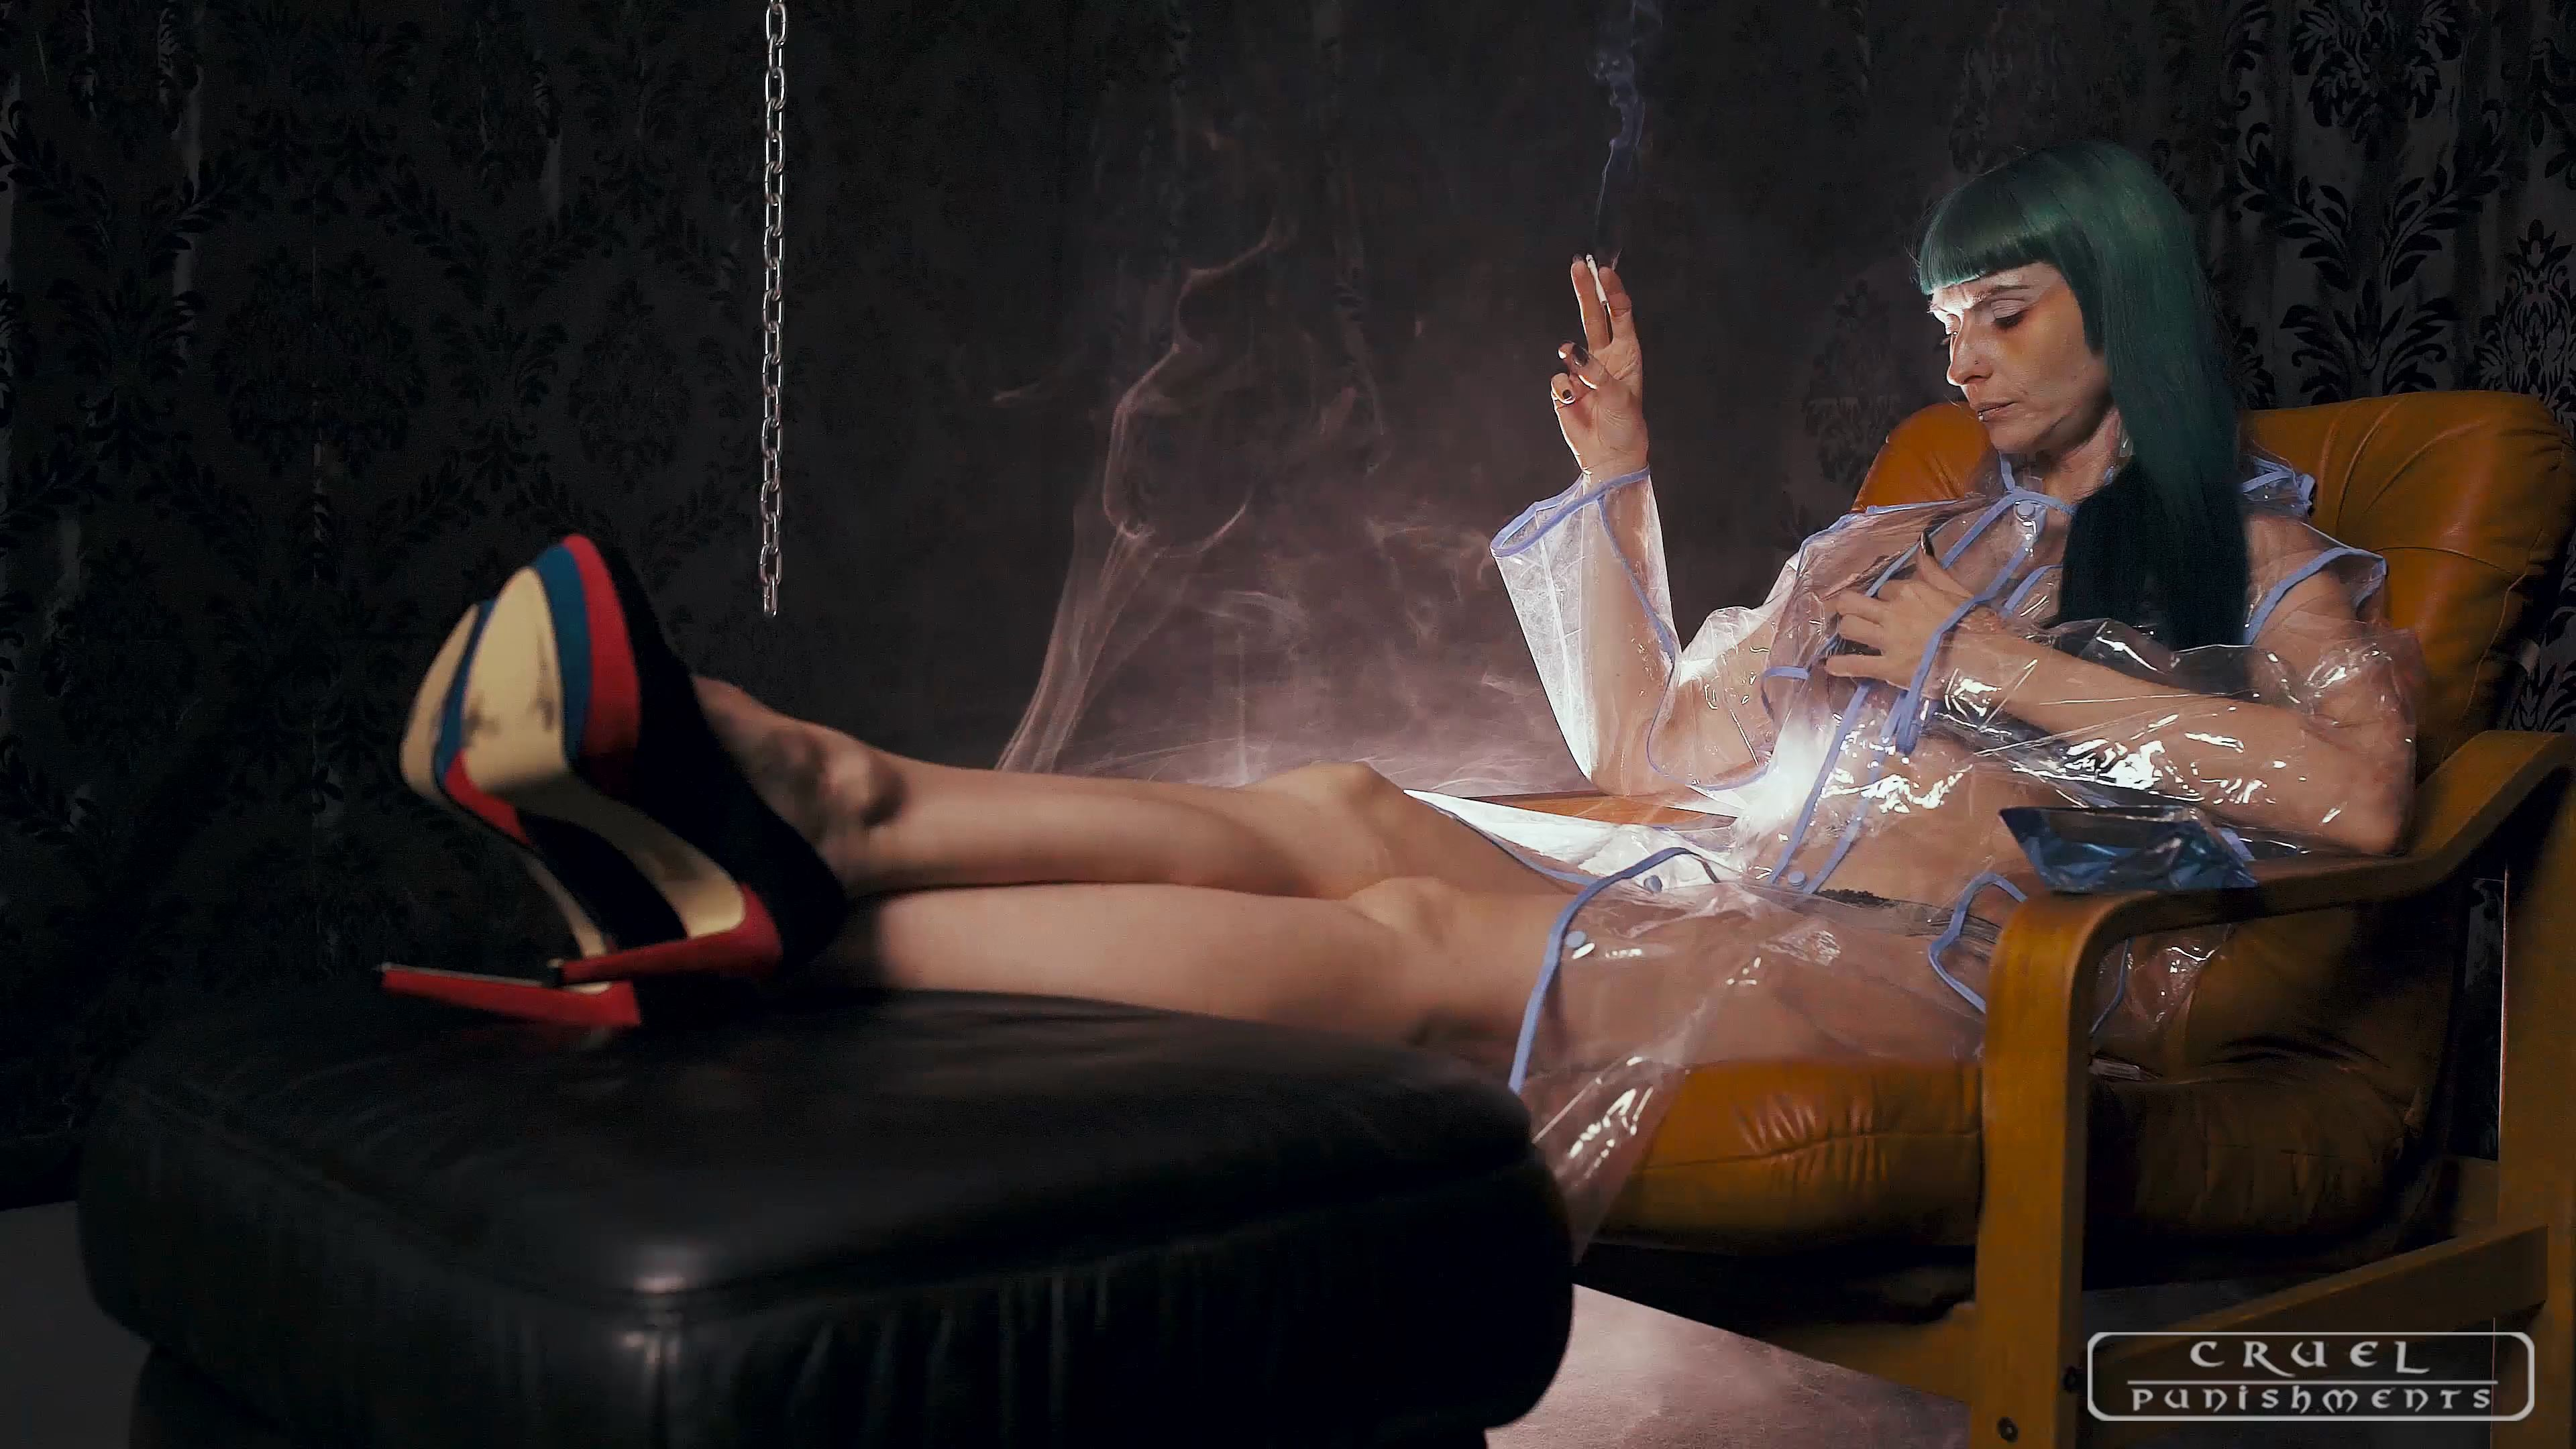 Mistress Suzy In Scene: Good cigarette - CRUEL PUNISHMENTS - SEVERE FEMDOM - FULL HD/2160p/MP4